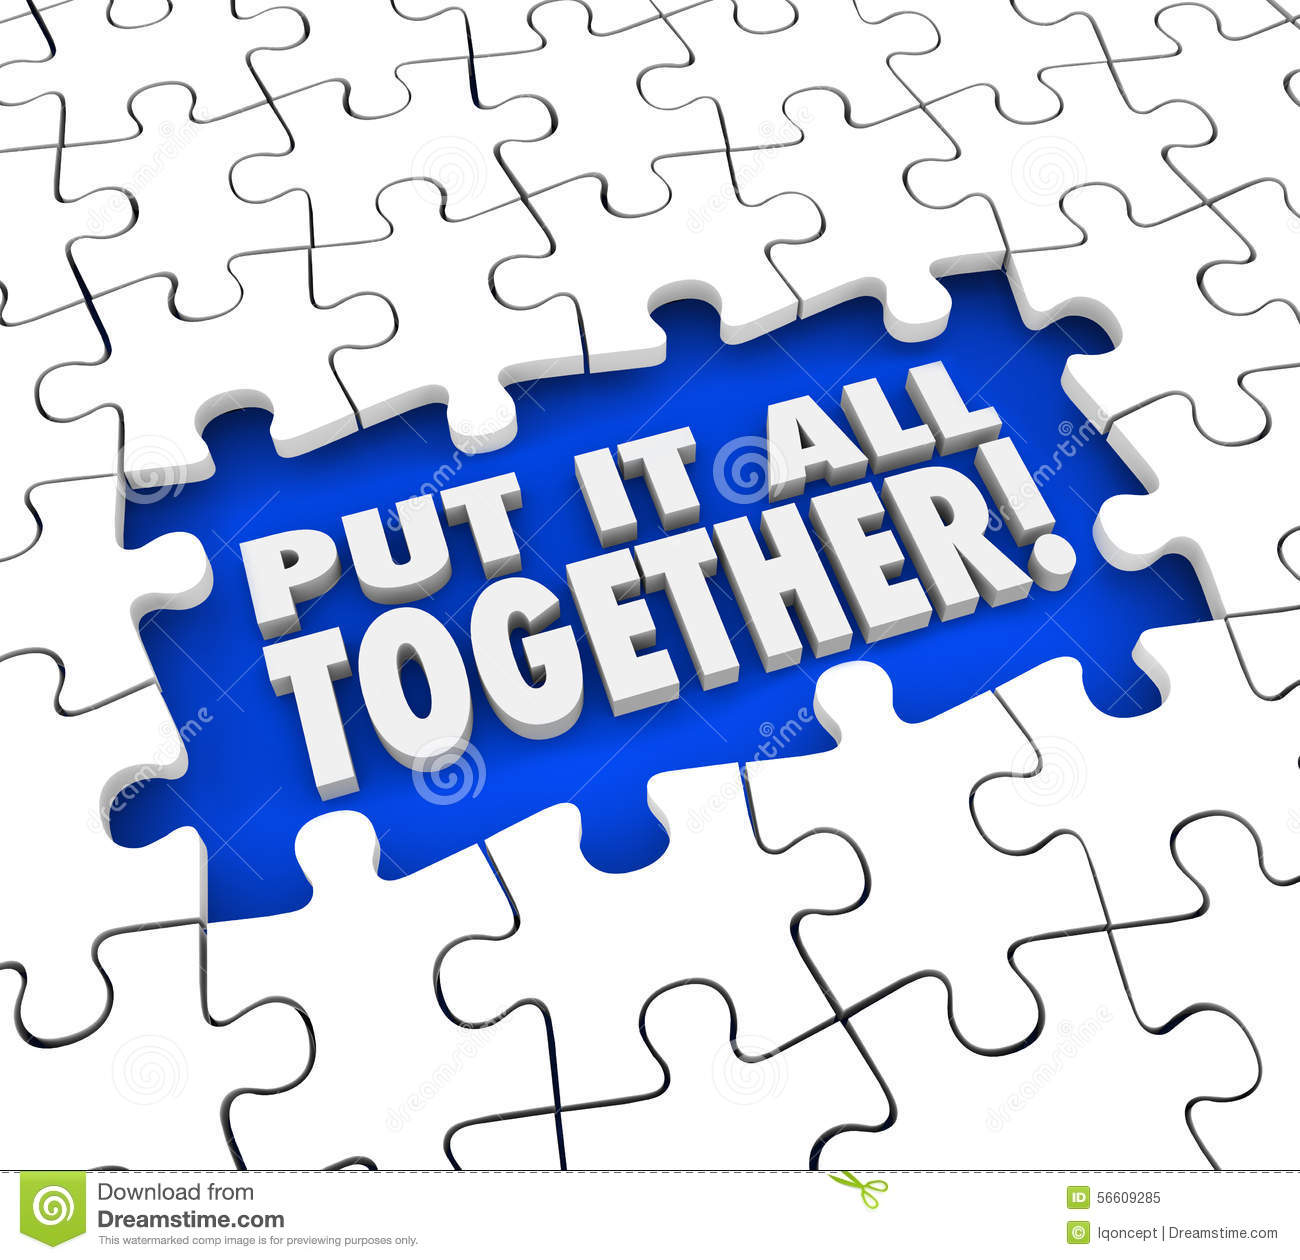 Put It All Together Puzzle Pieces Solving Mystery Or Problem By Seeing